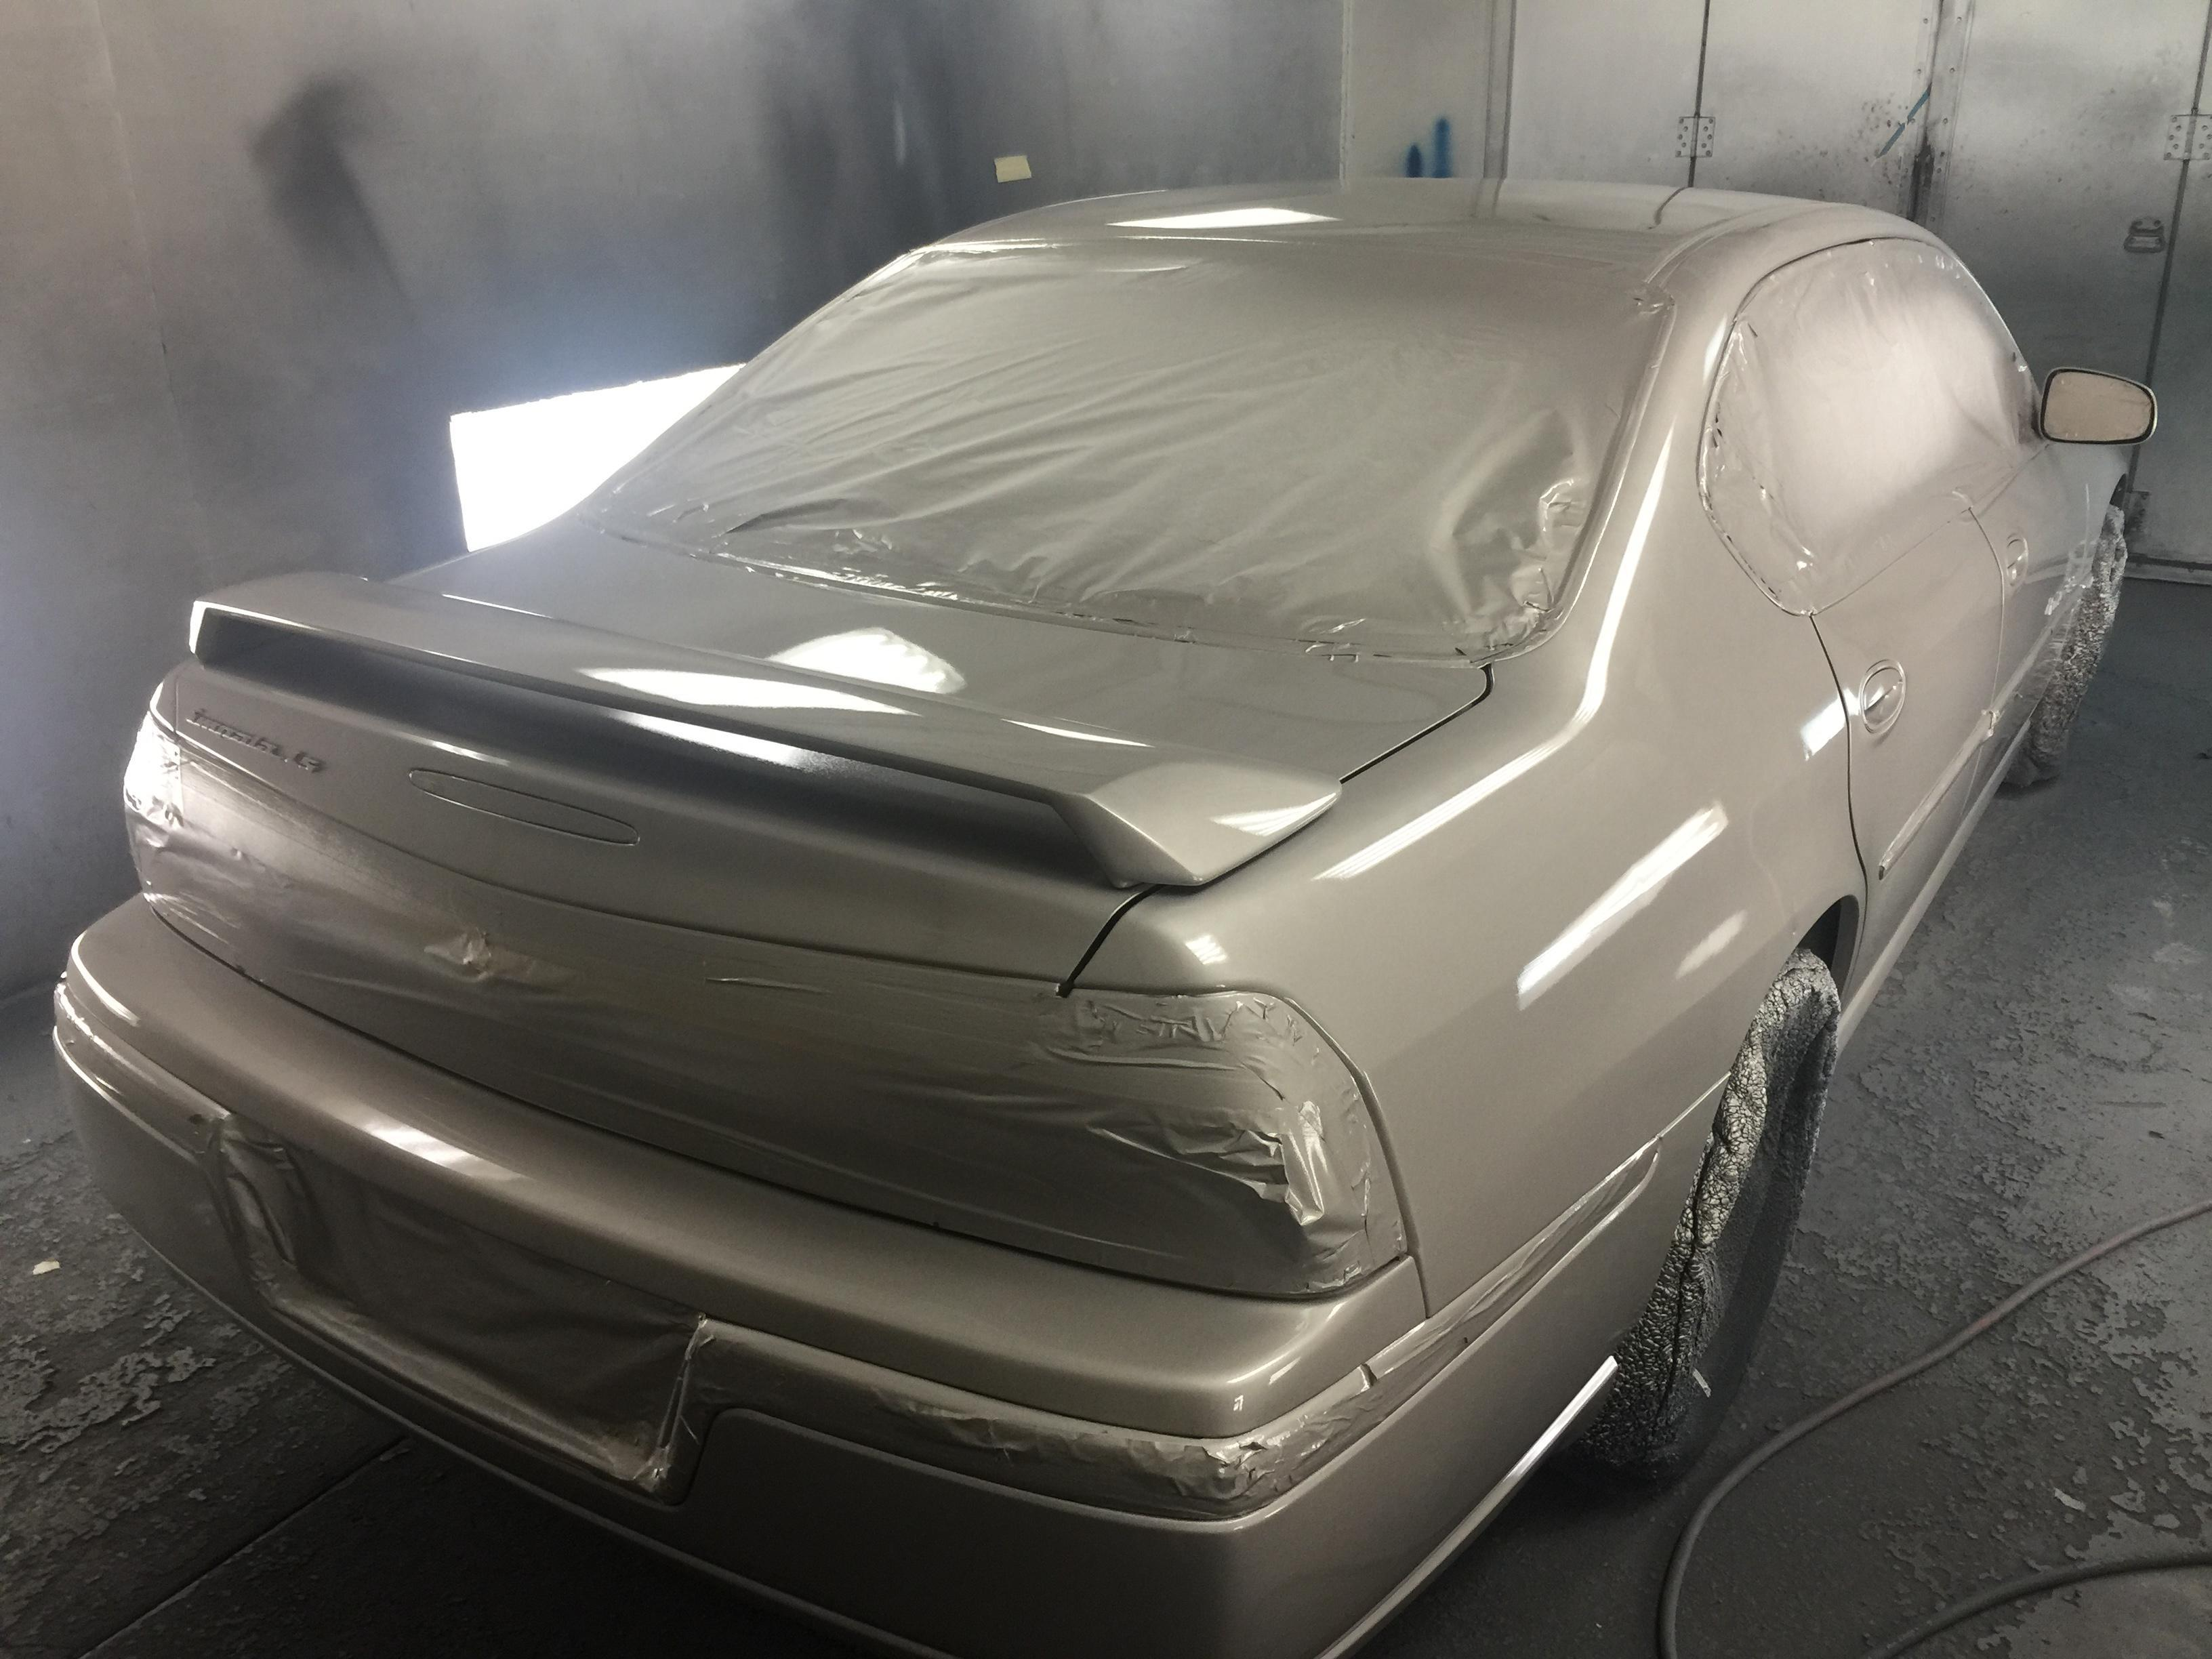 Maaco Collision Repair & Auto Painting image 96